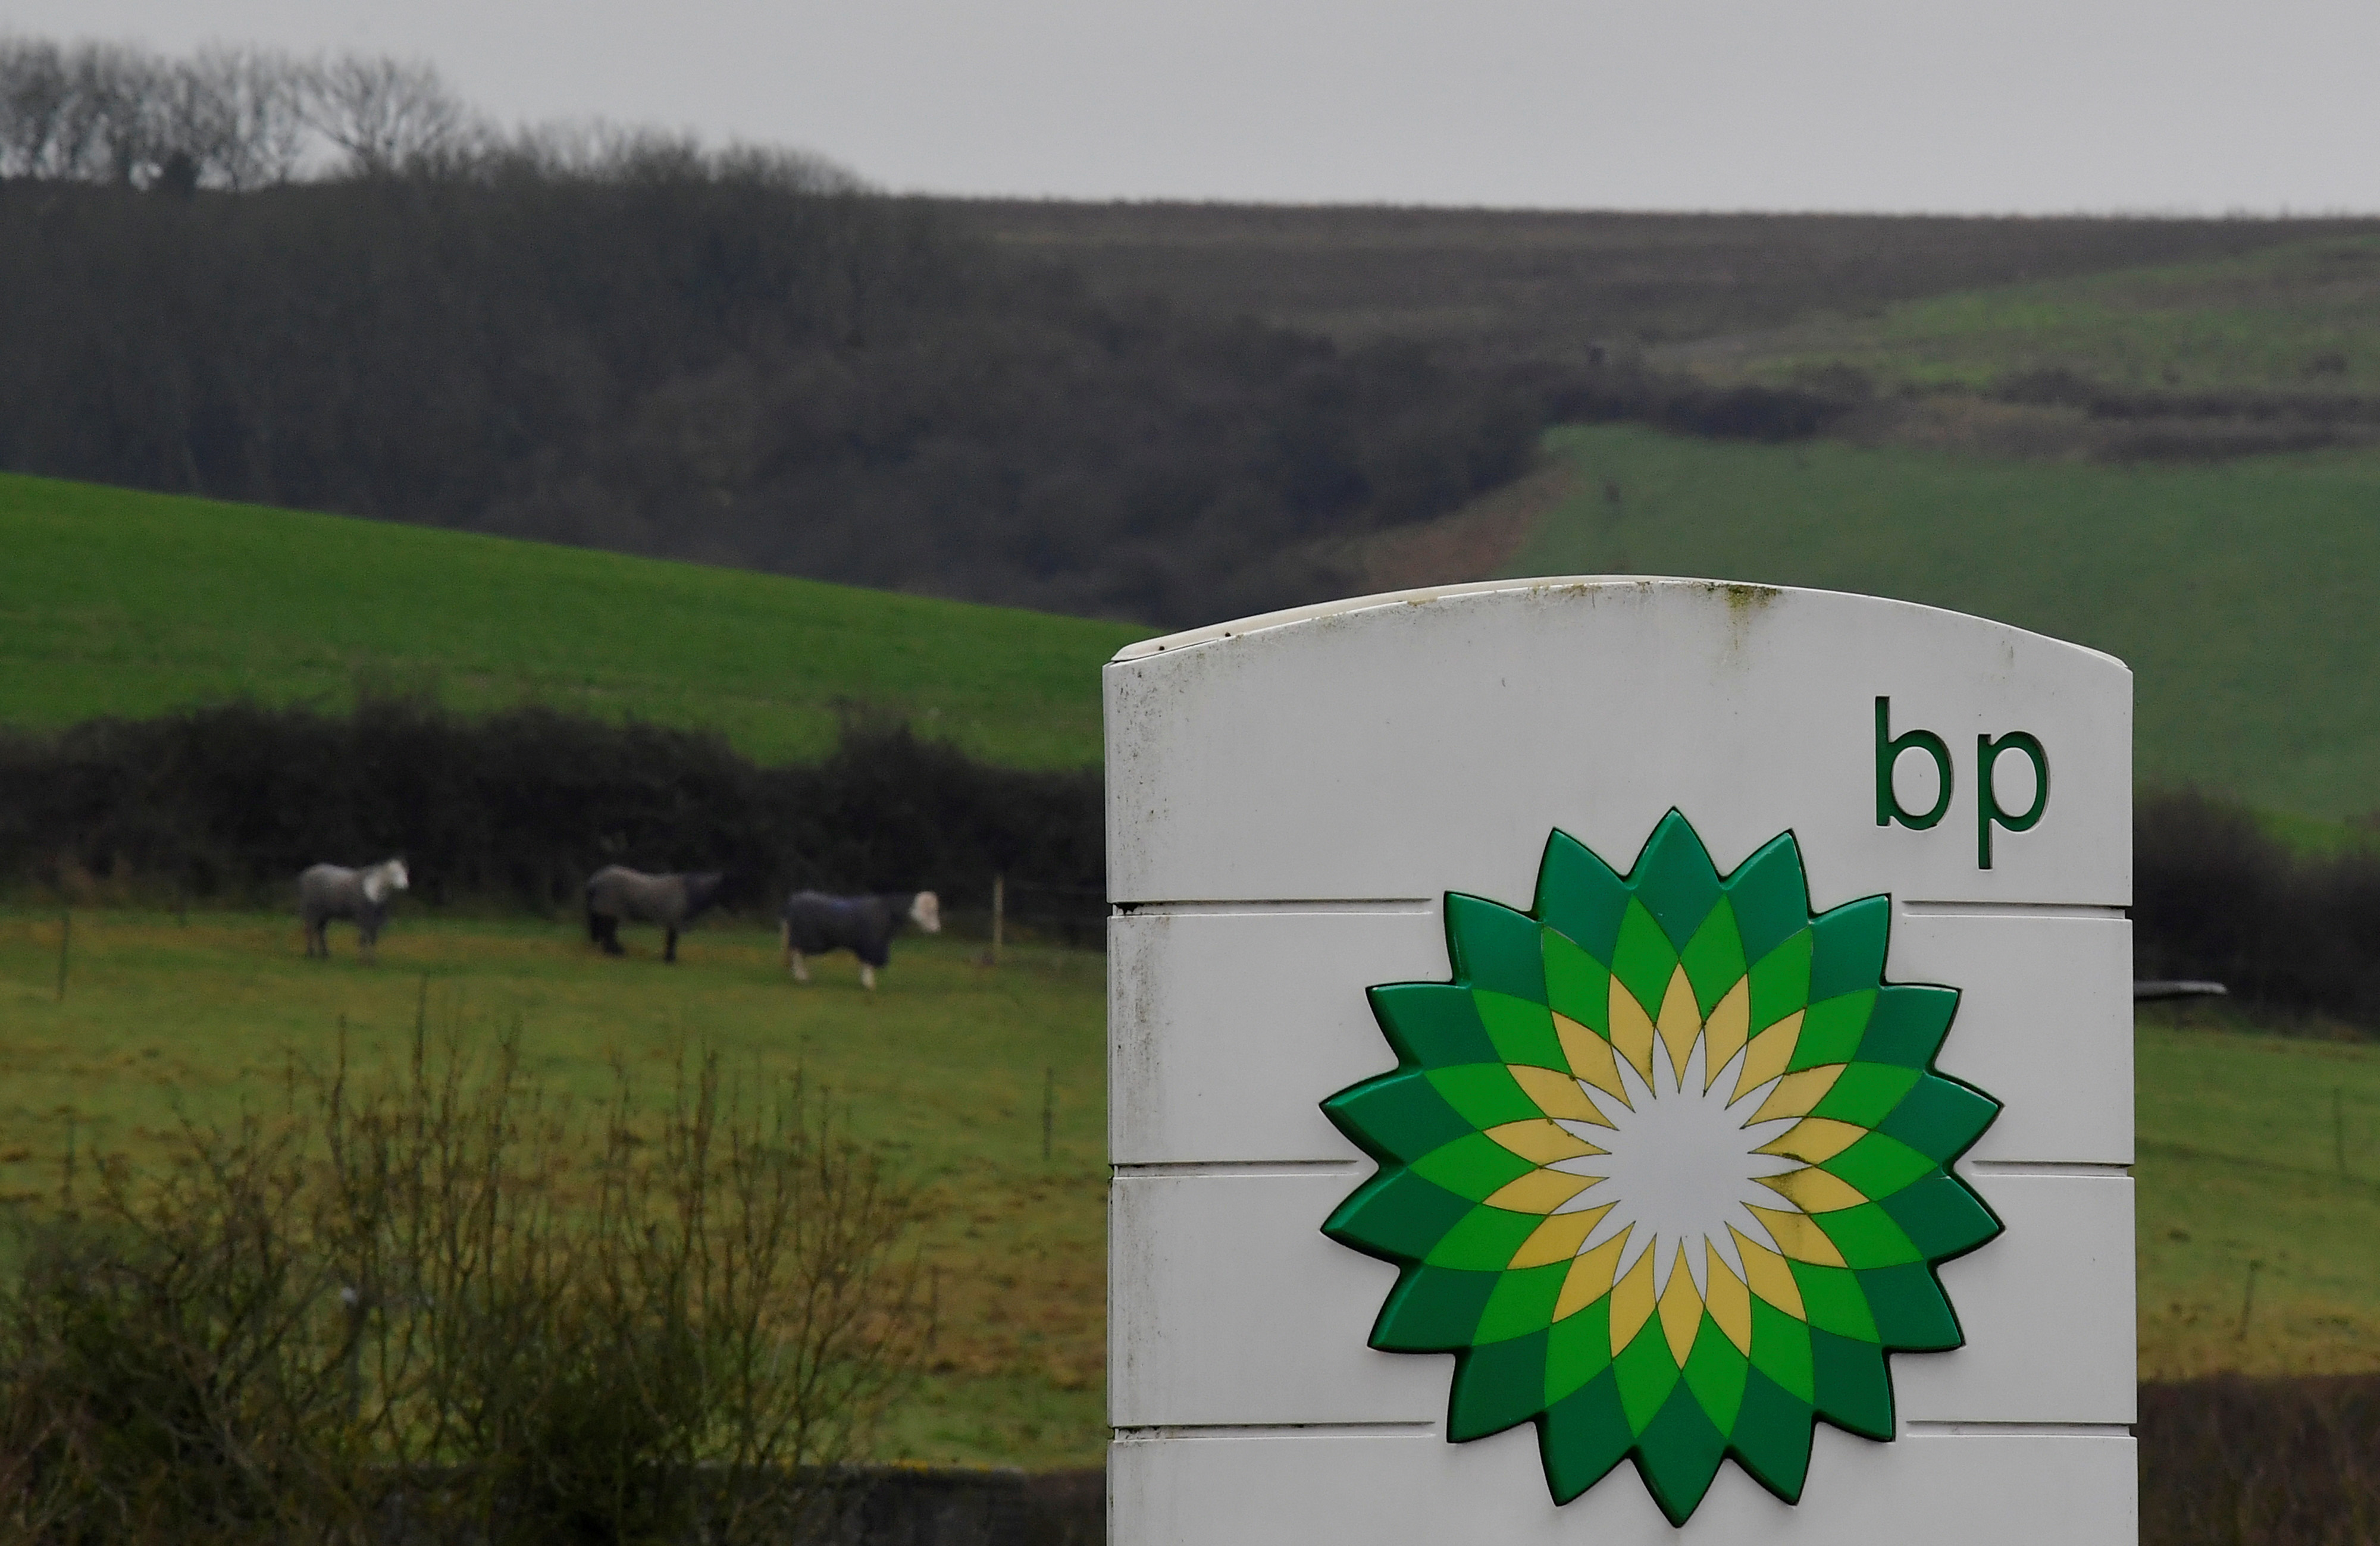 BP signage is seen at a service station near Brighton, Britain, January 30, 2021. REUTERS/Toby Melville